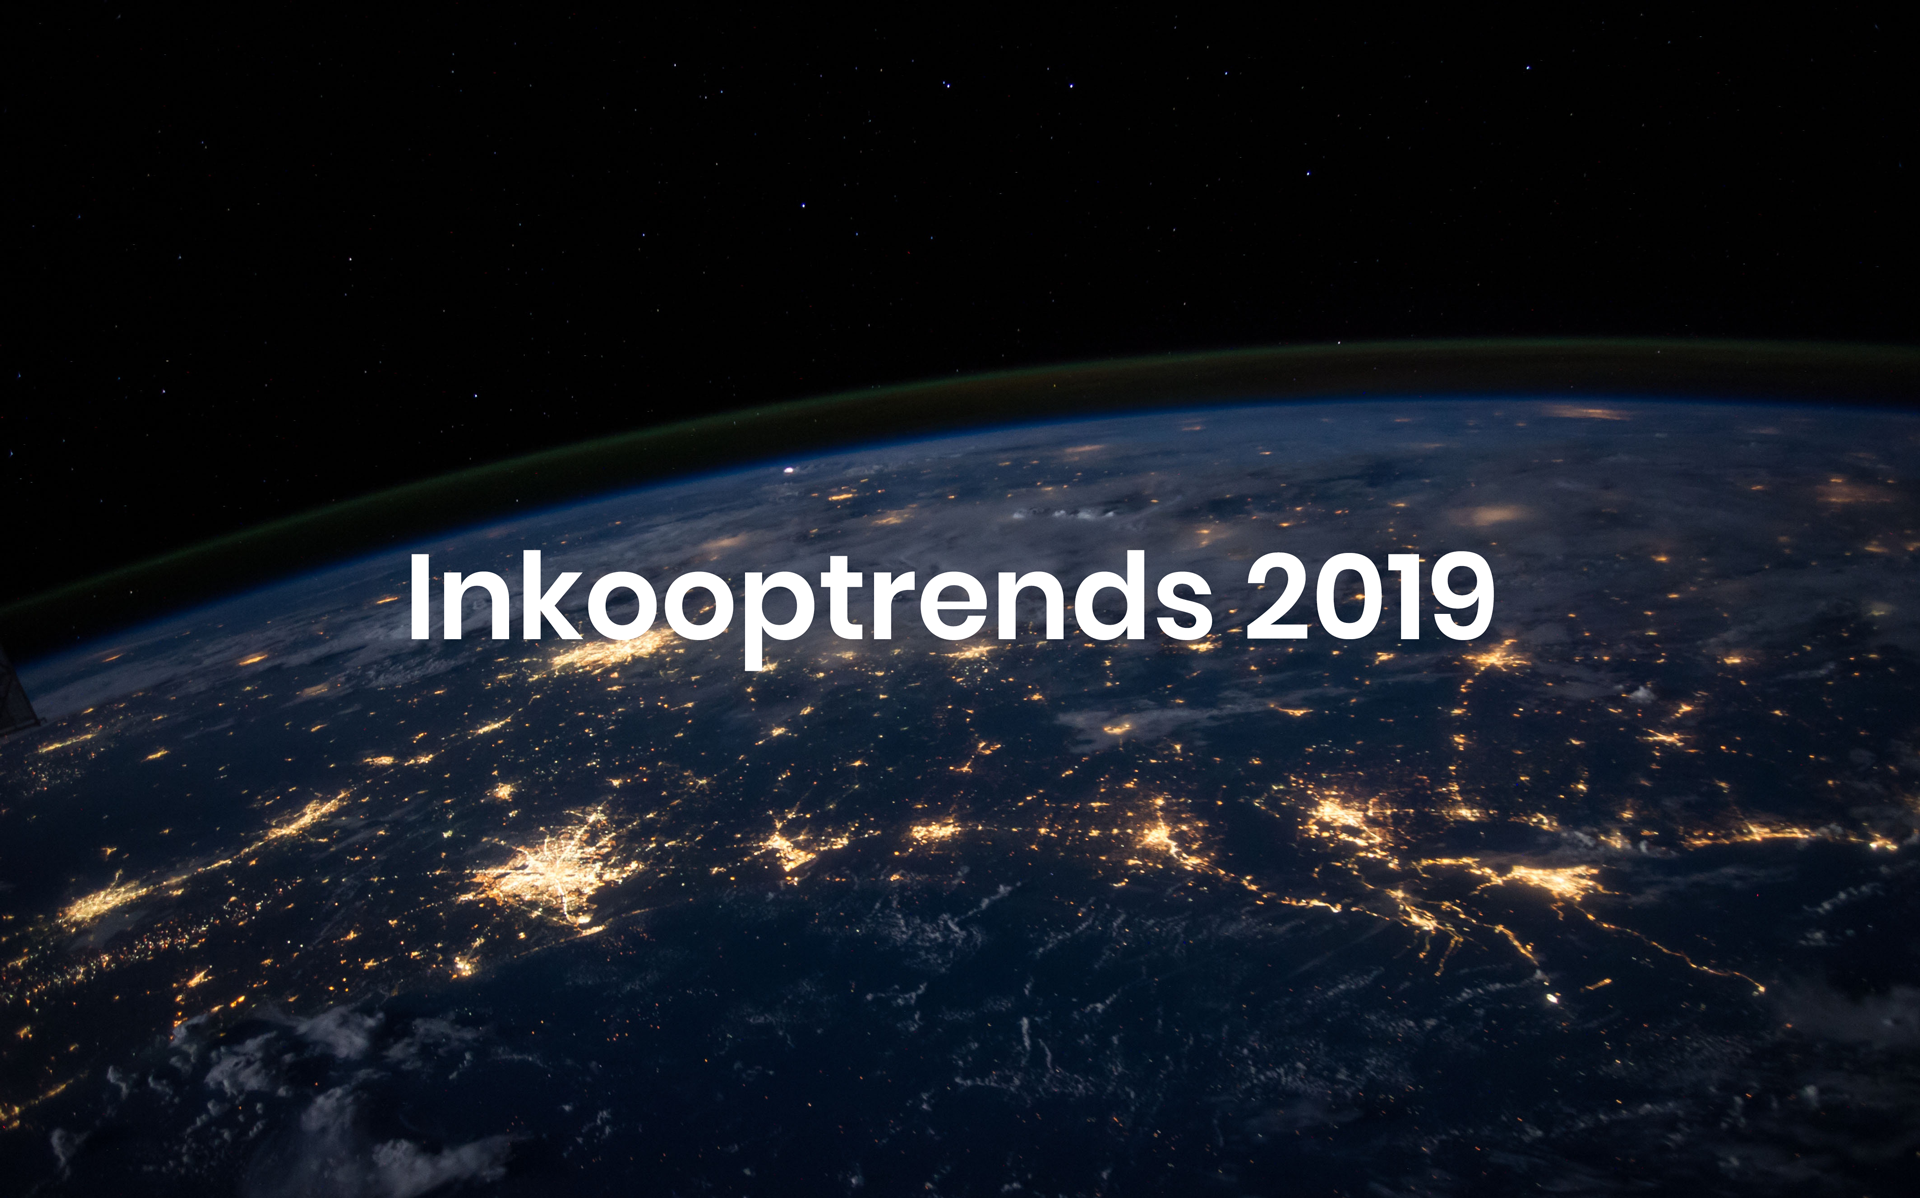 Supply Chain Inkooptrends 2019 Tradecloud